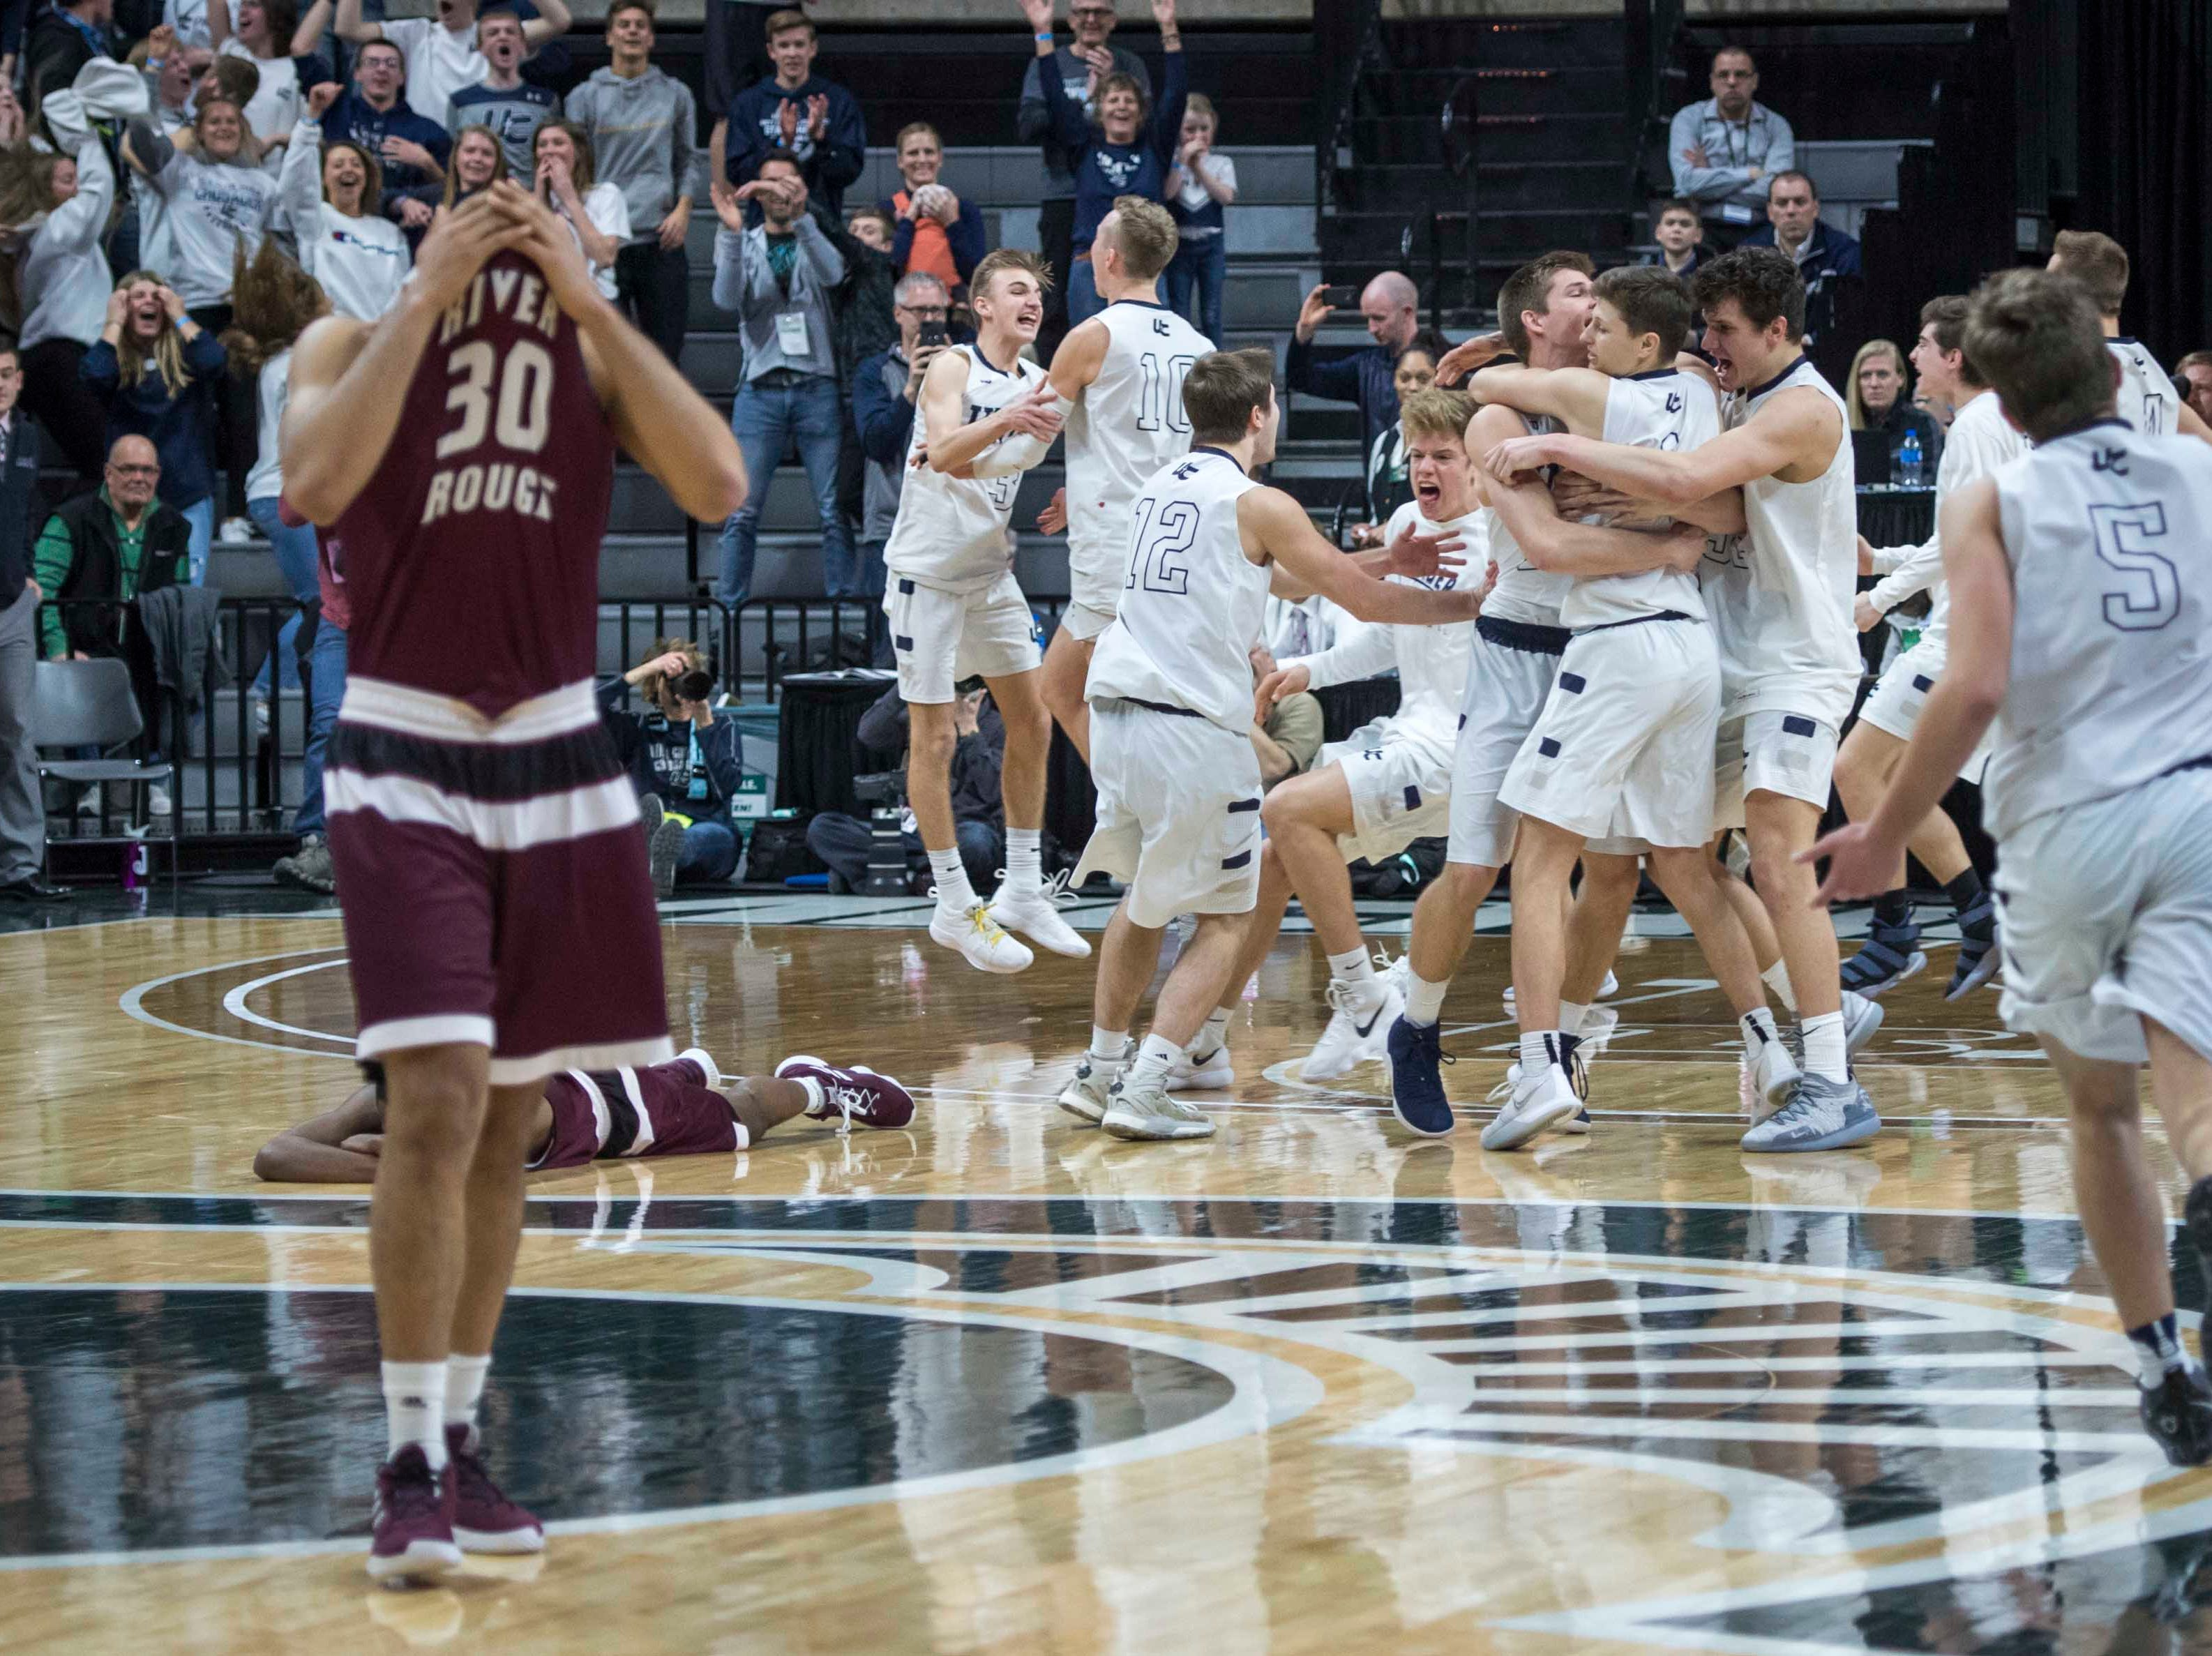 River Rouge's Dan Few buries his head in his jersey while Hudsonville Unity Christian players celebrate their 58-55 Division 2 championship game victory over River Rouge at Breslin Center in East Lansing on Saturday, March 16, 2019.